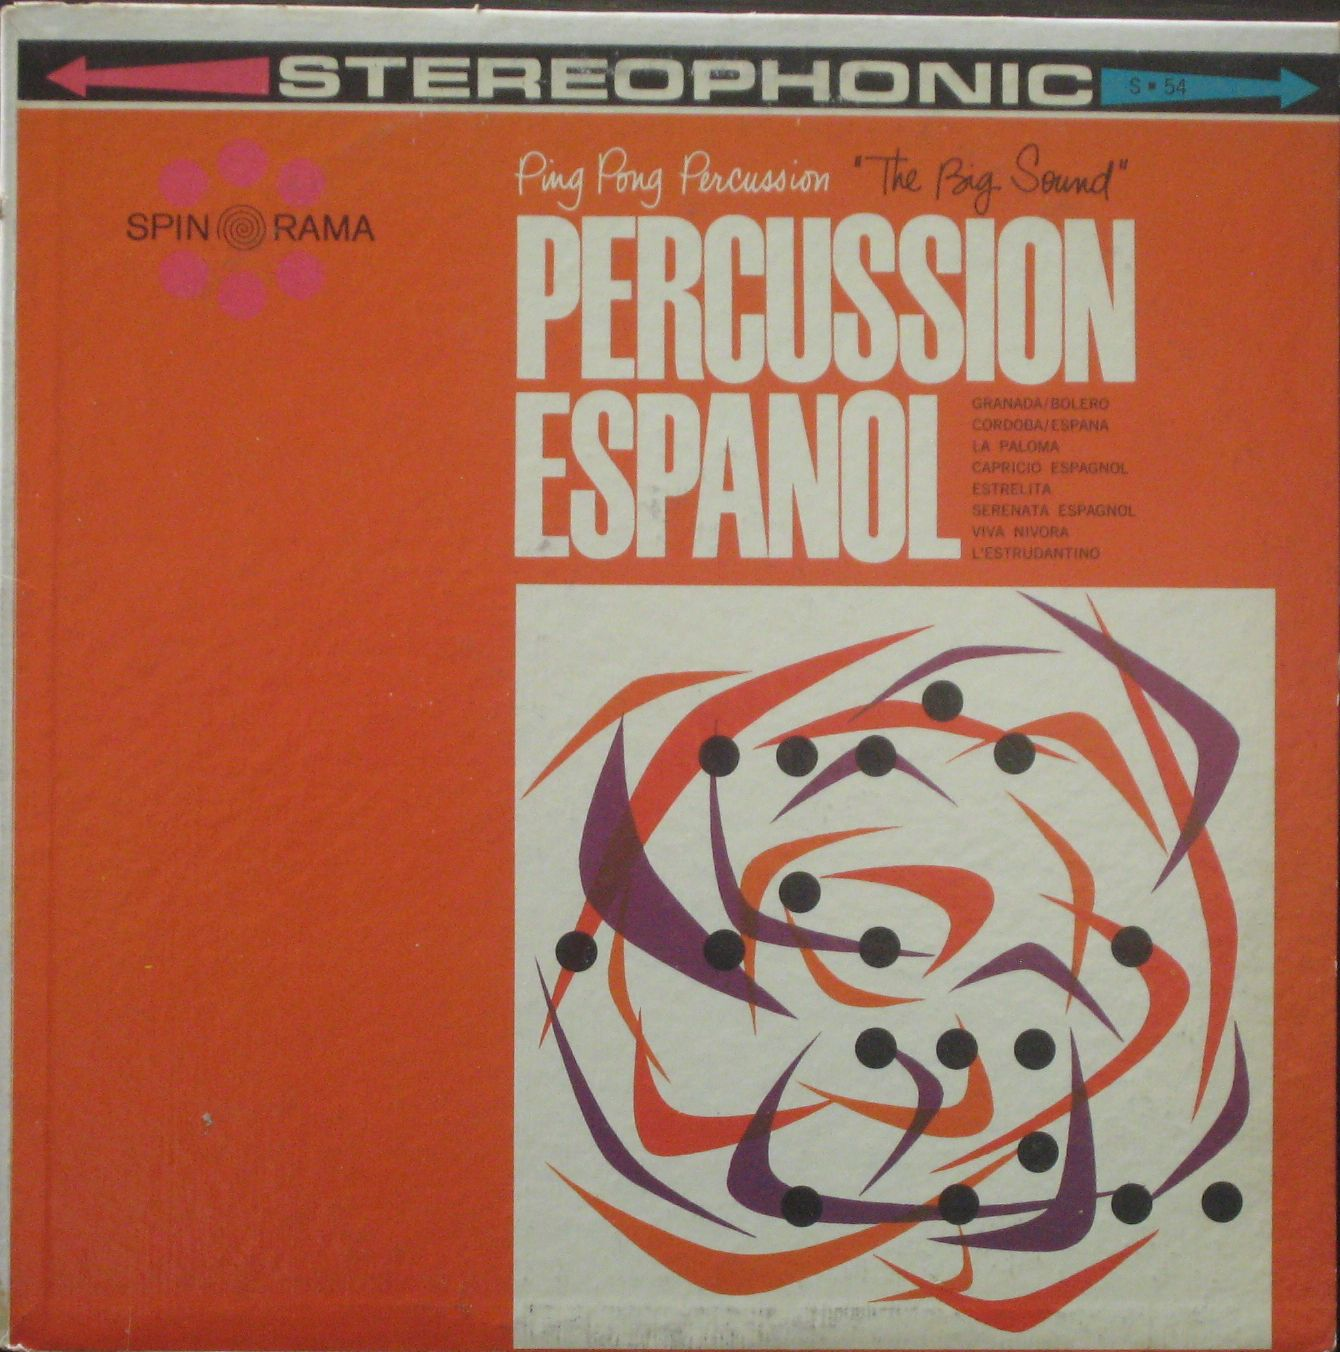 Percussion Espanol Side 1 (MP3) | The Cross Pollinator